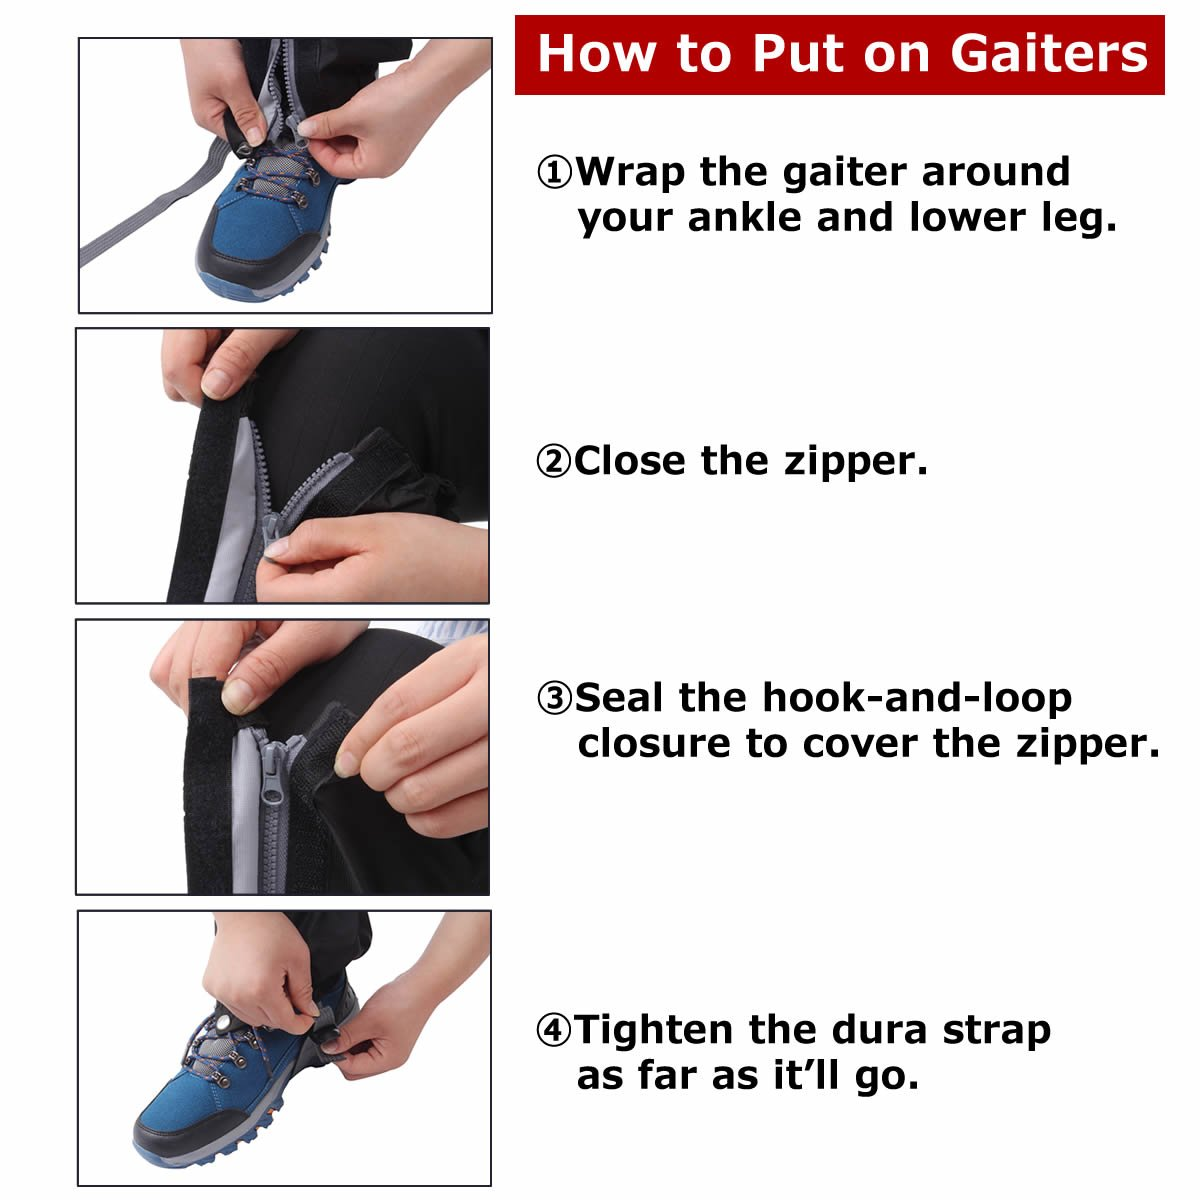 Macks.i Outdoor Unisex Waterproof Camping Hiking Gaiters High Leg Cover 1pair with a Free Shoe Bag by Macks.i (Image #4)